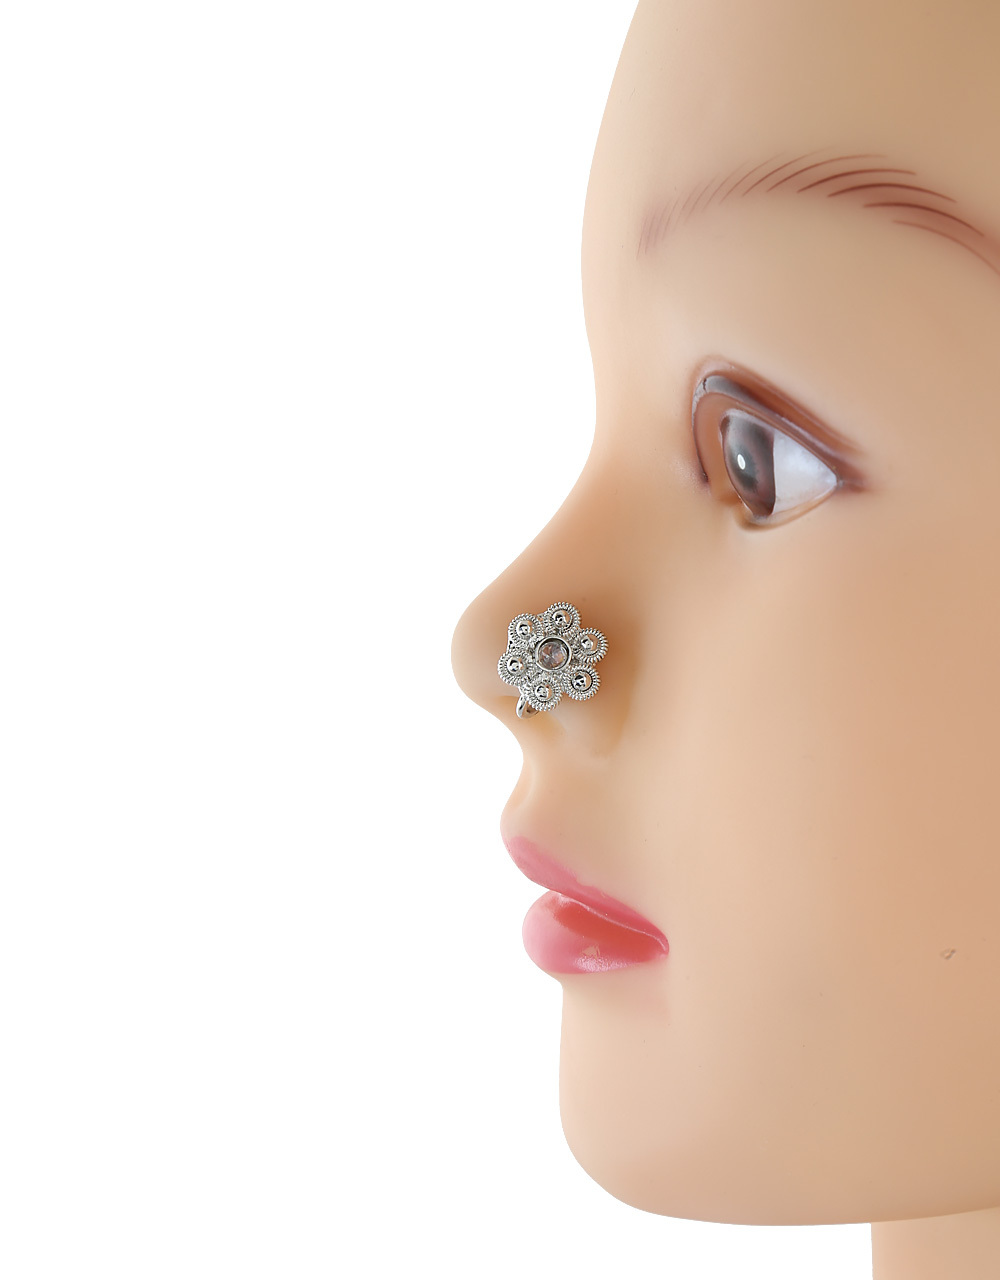 Oxidised Nose Pin Studded With Stone for Women